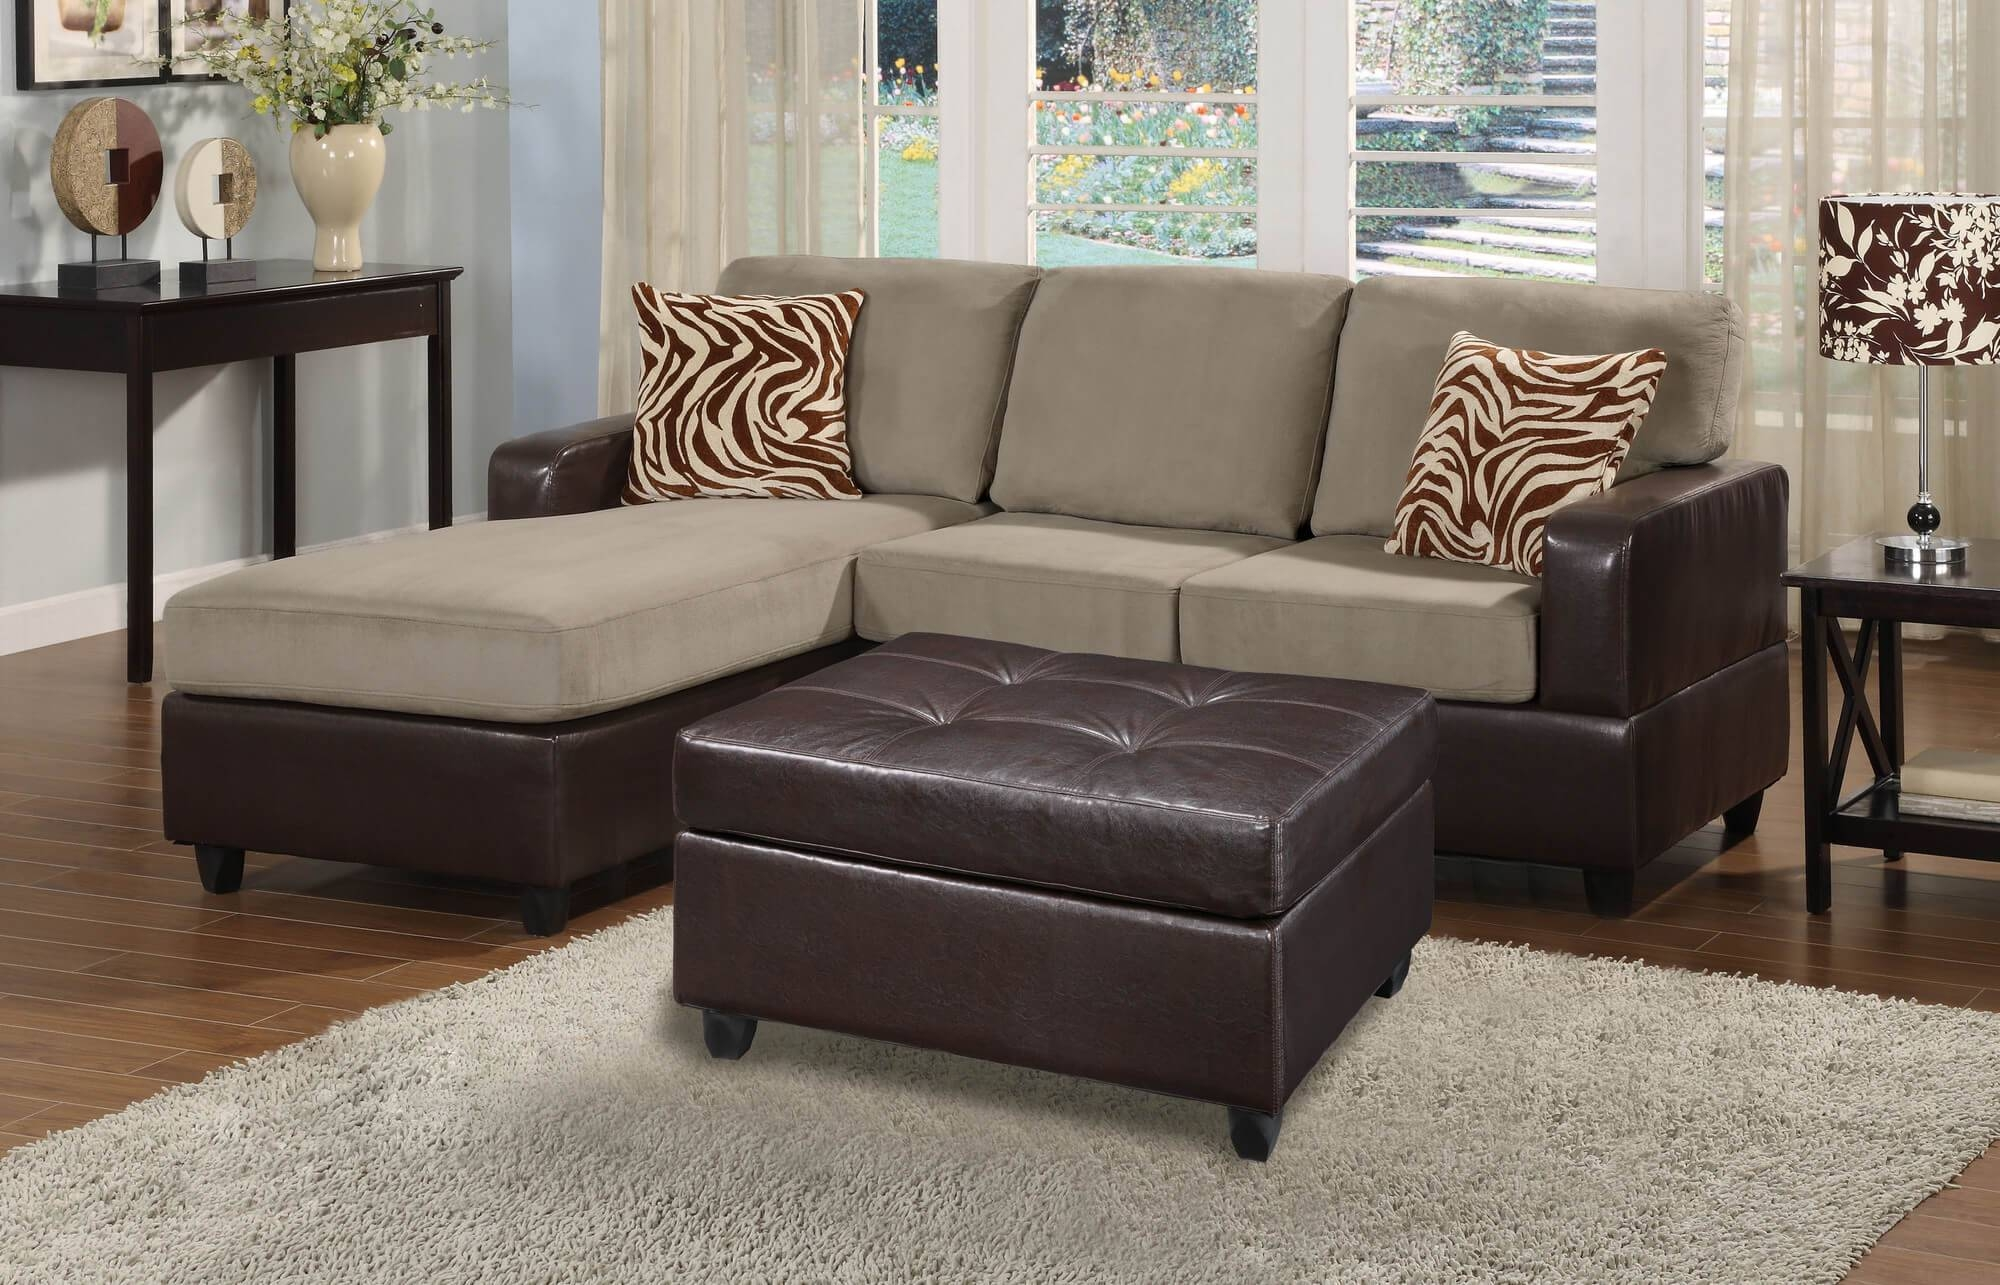 100 Beautiful Sectional Sofas Under $1,000 with regard to Tufted Sectional Sofa With Chaise (Image 1 of 30)